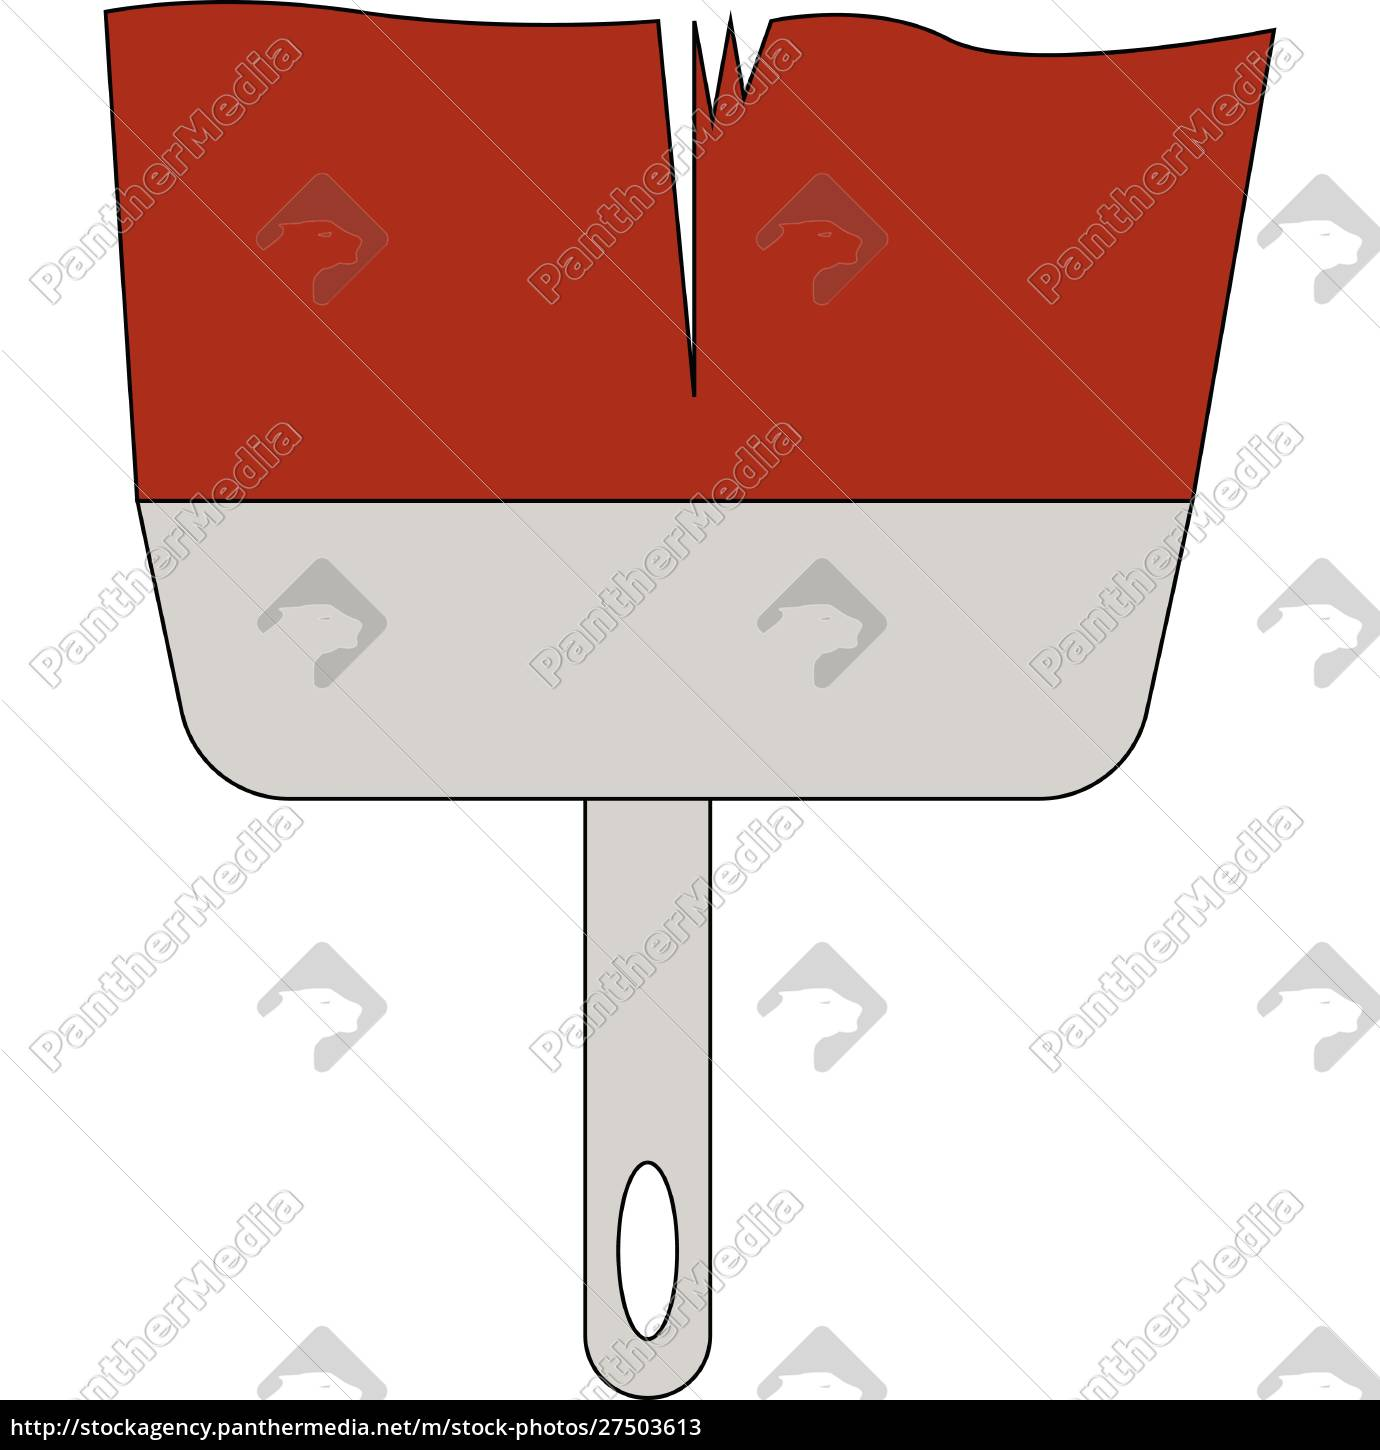 a, big, red, color, paintbrush, for - 27503613